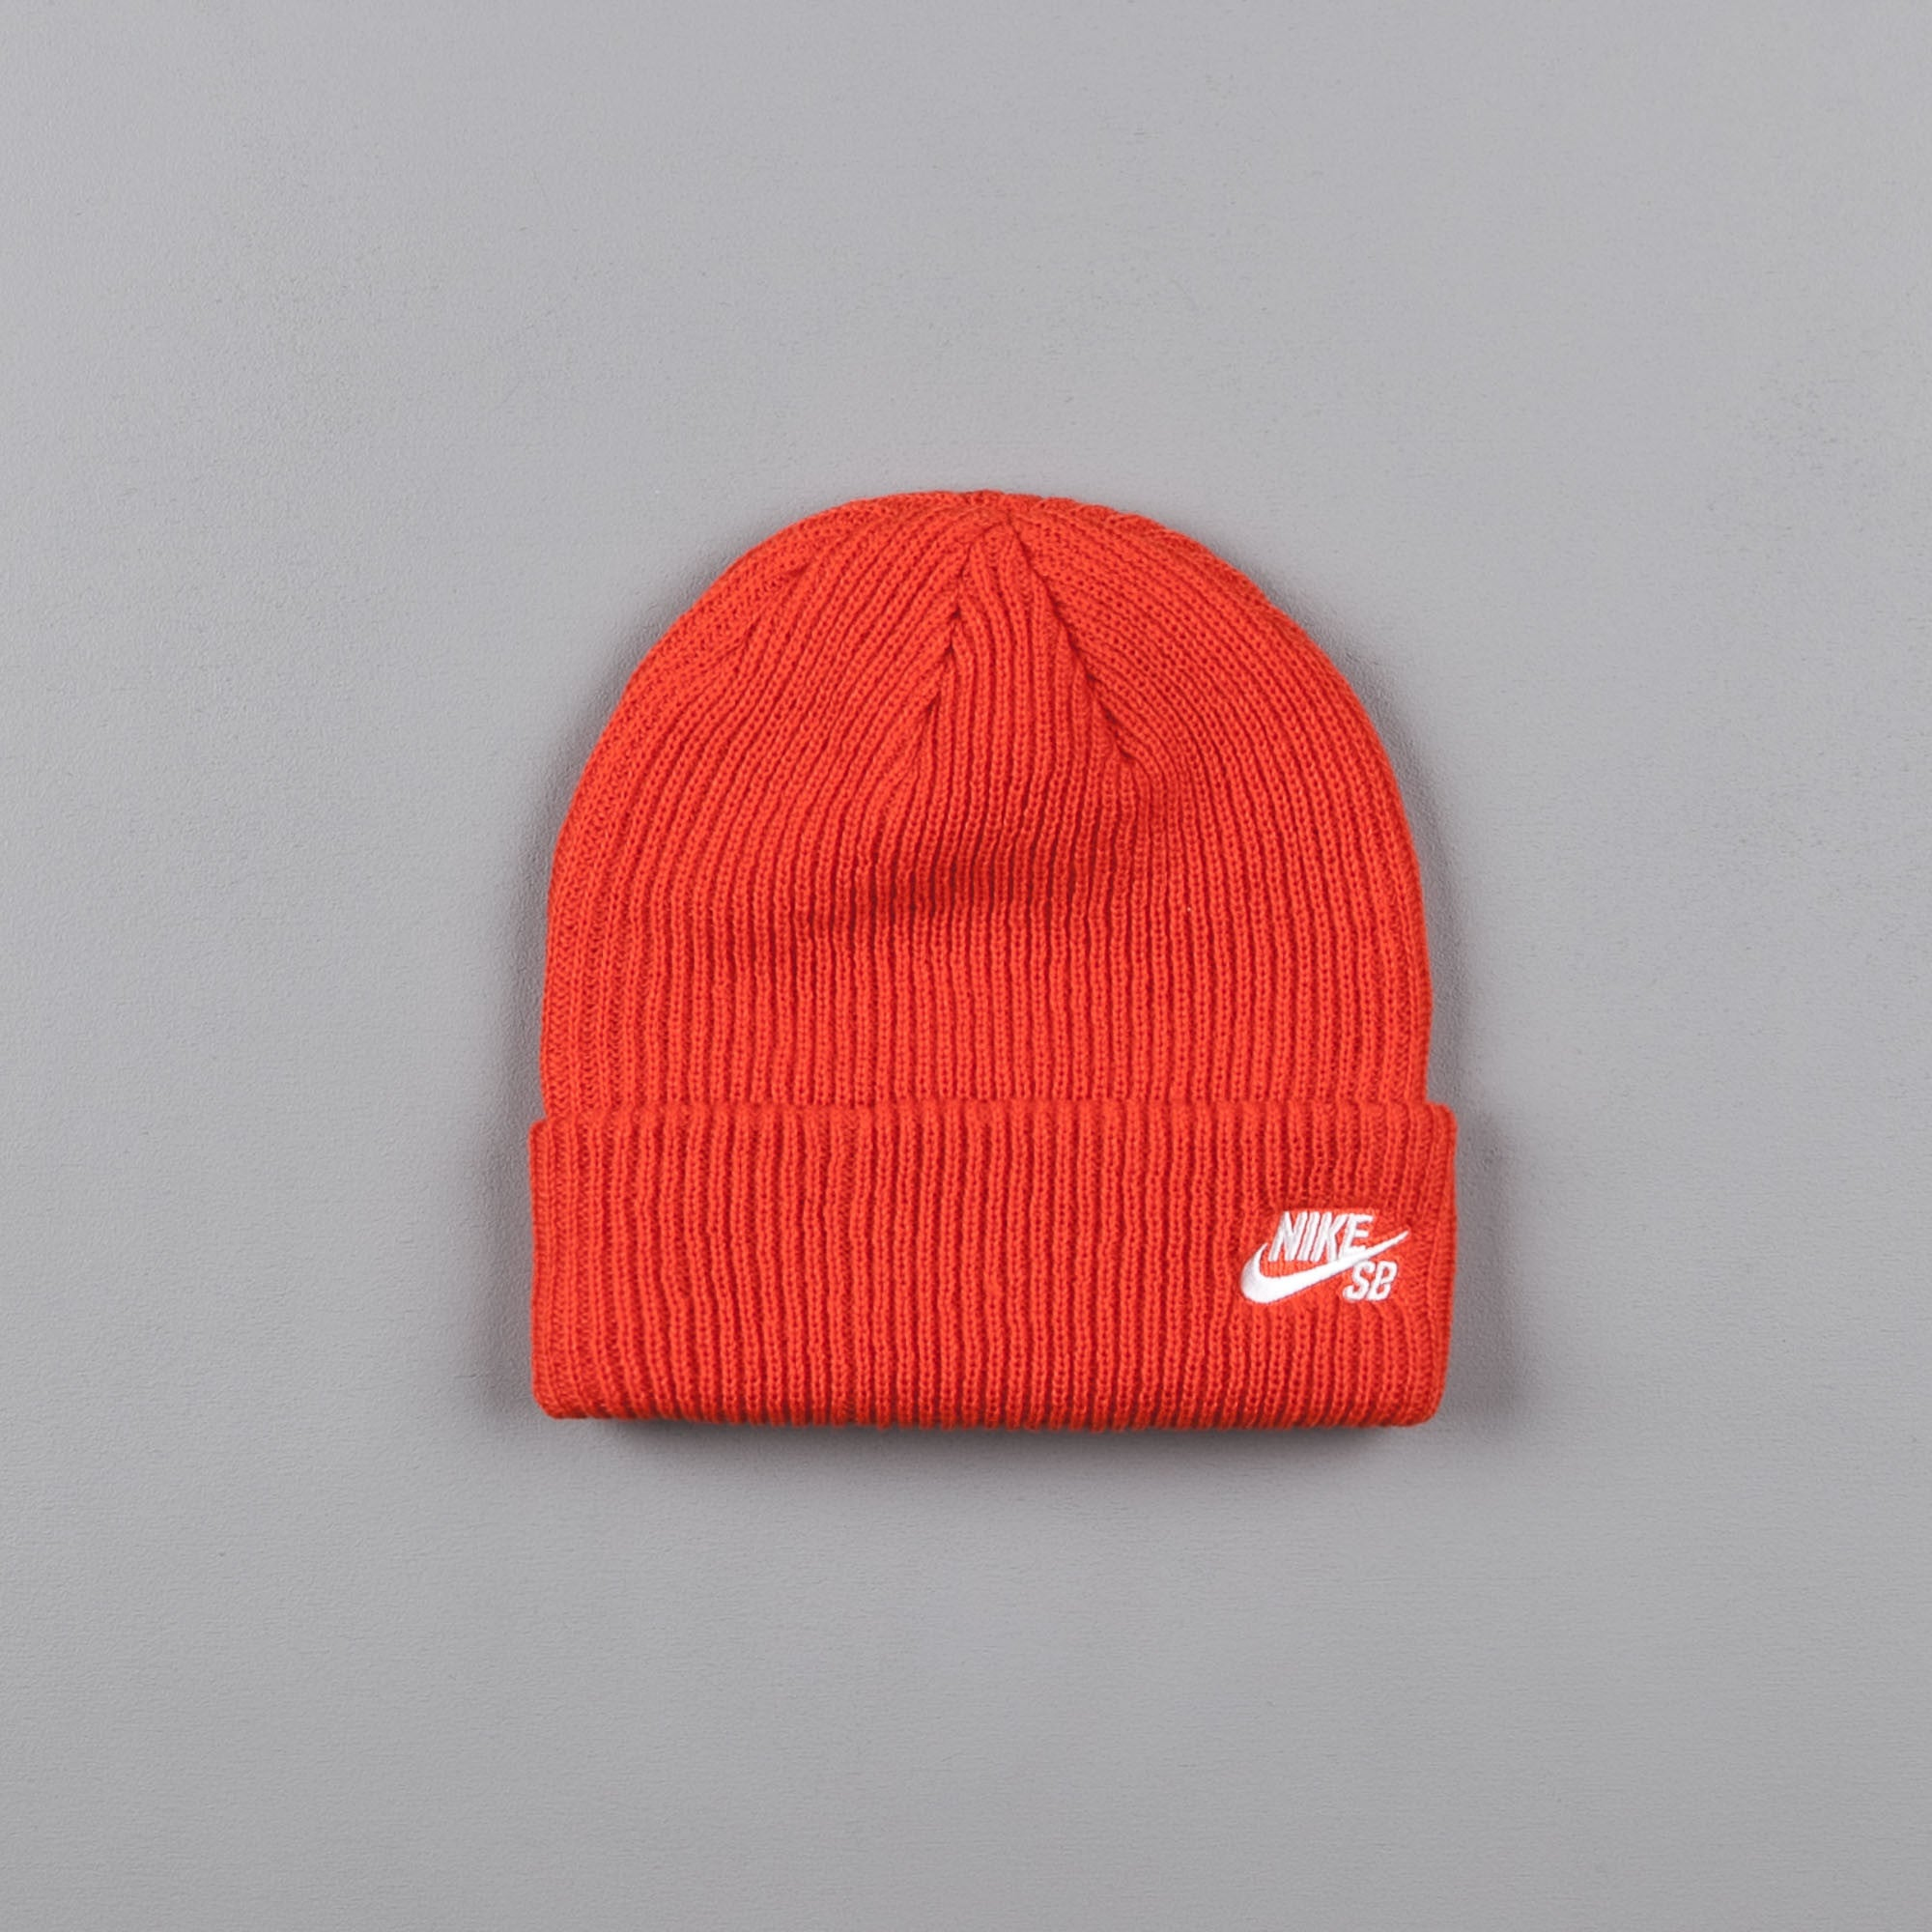 3b58d97dd09 ... official nike sb fisherman beanie max orange white e68f8 a0fef